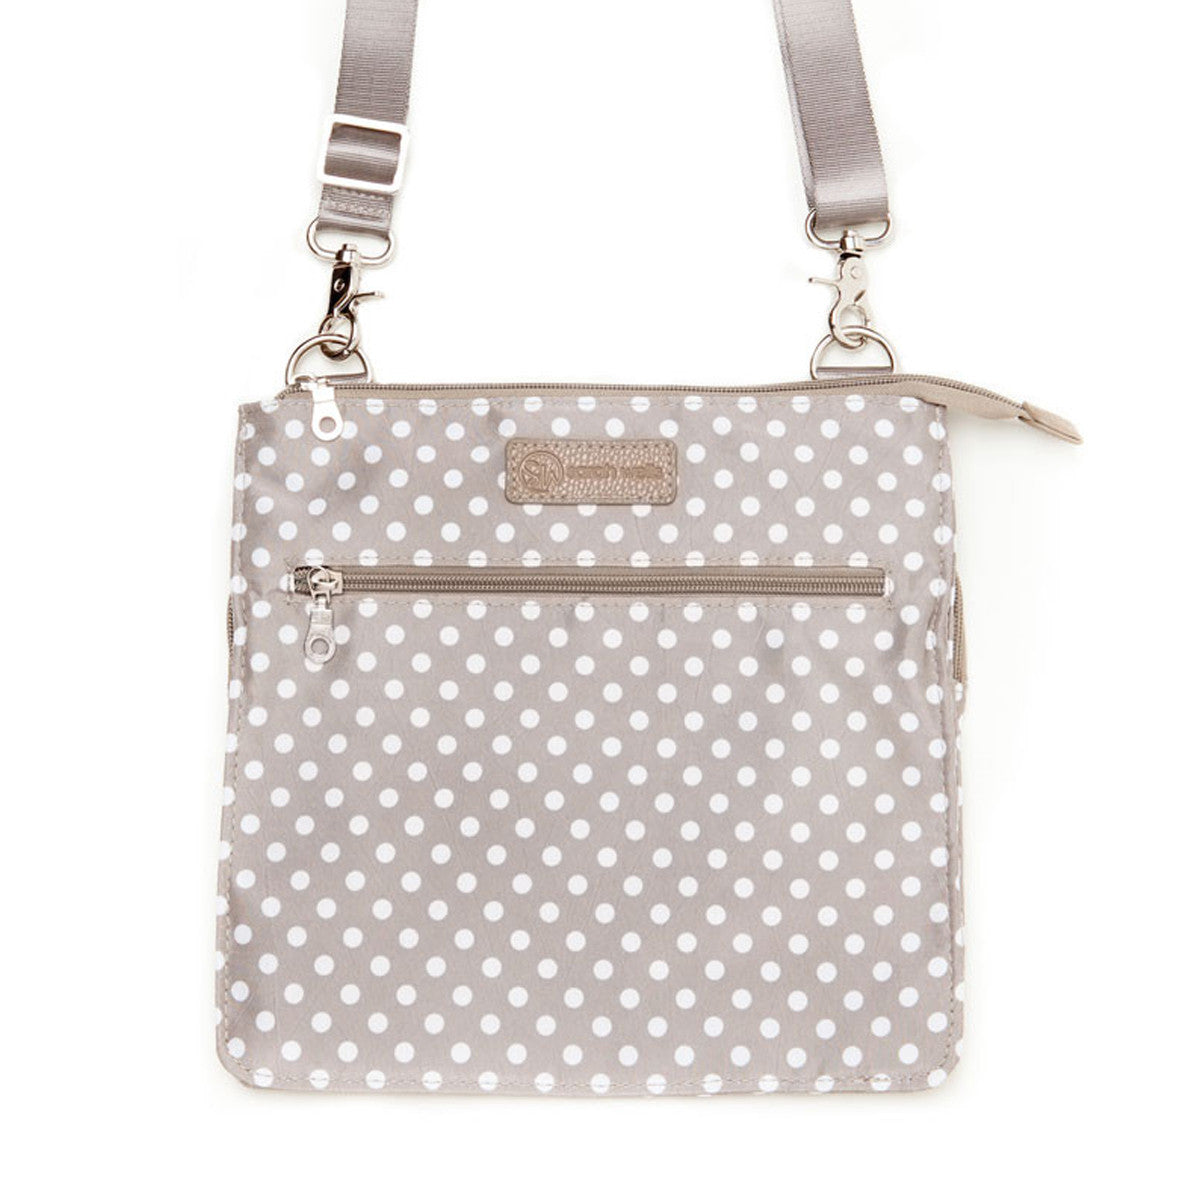 MheartM (greige) - Breast Pump Bags and Pumping Accessories from Sarah Wells Bags